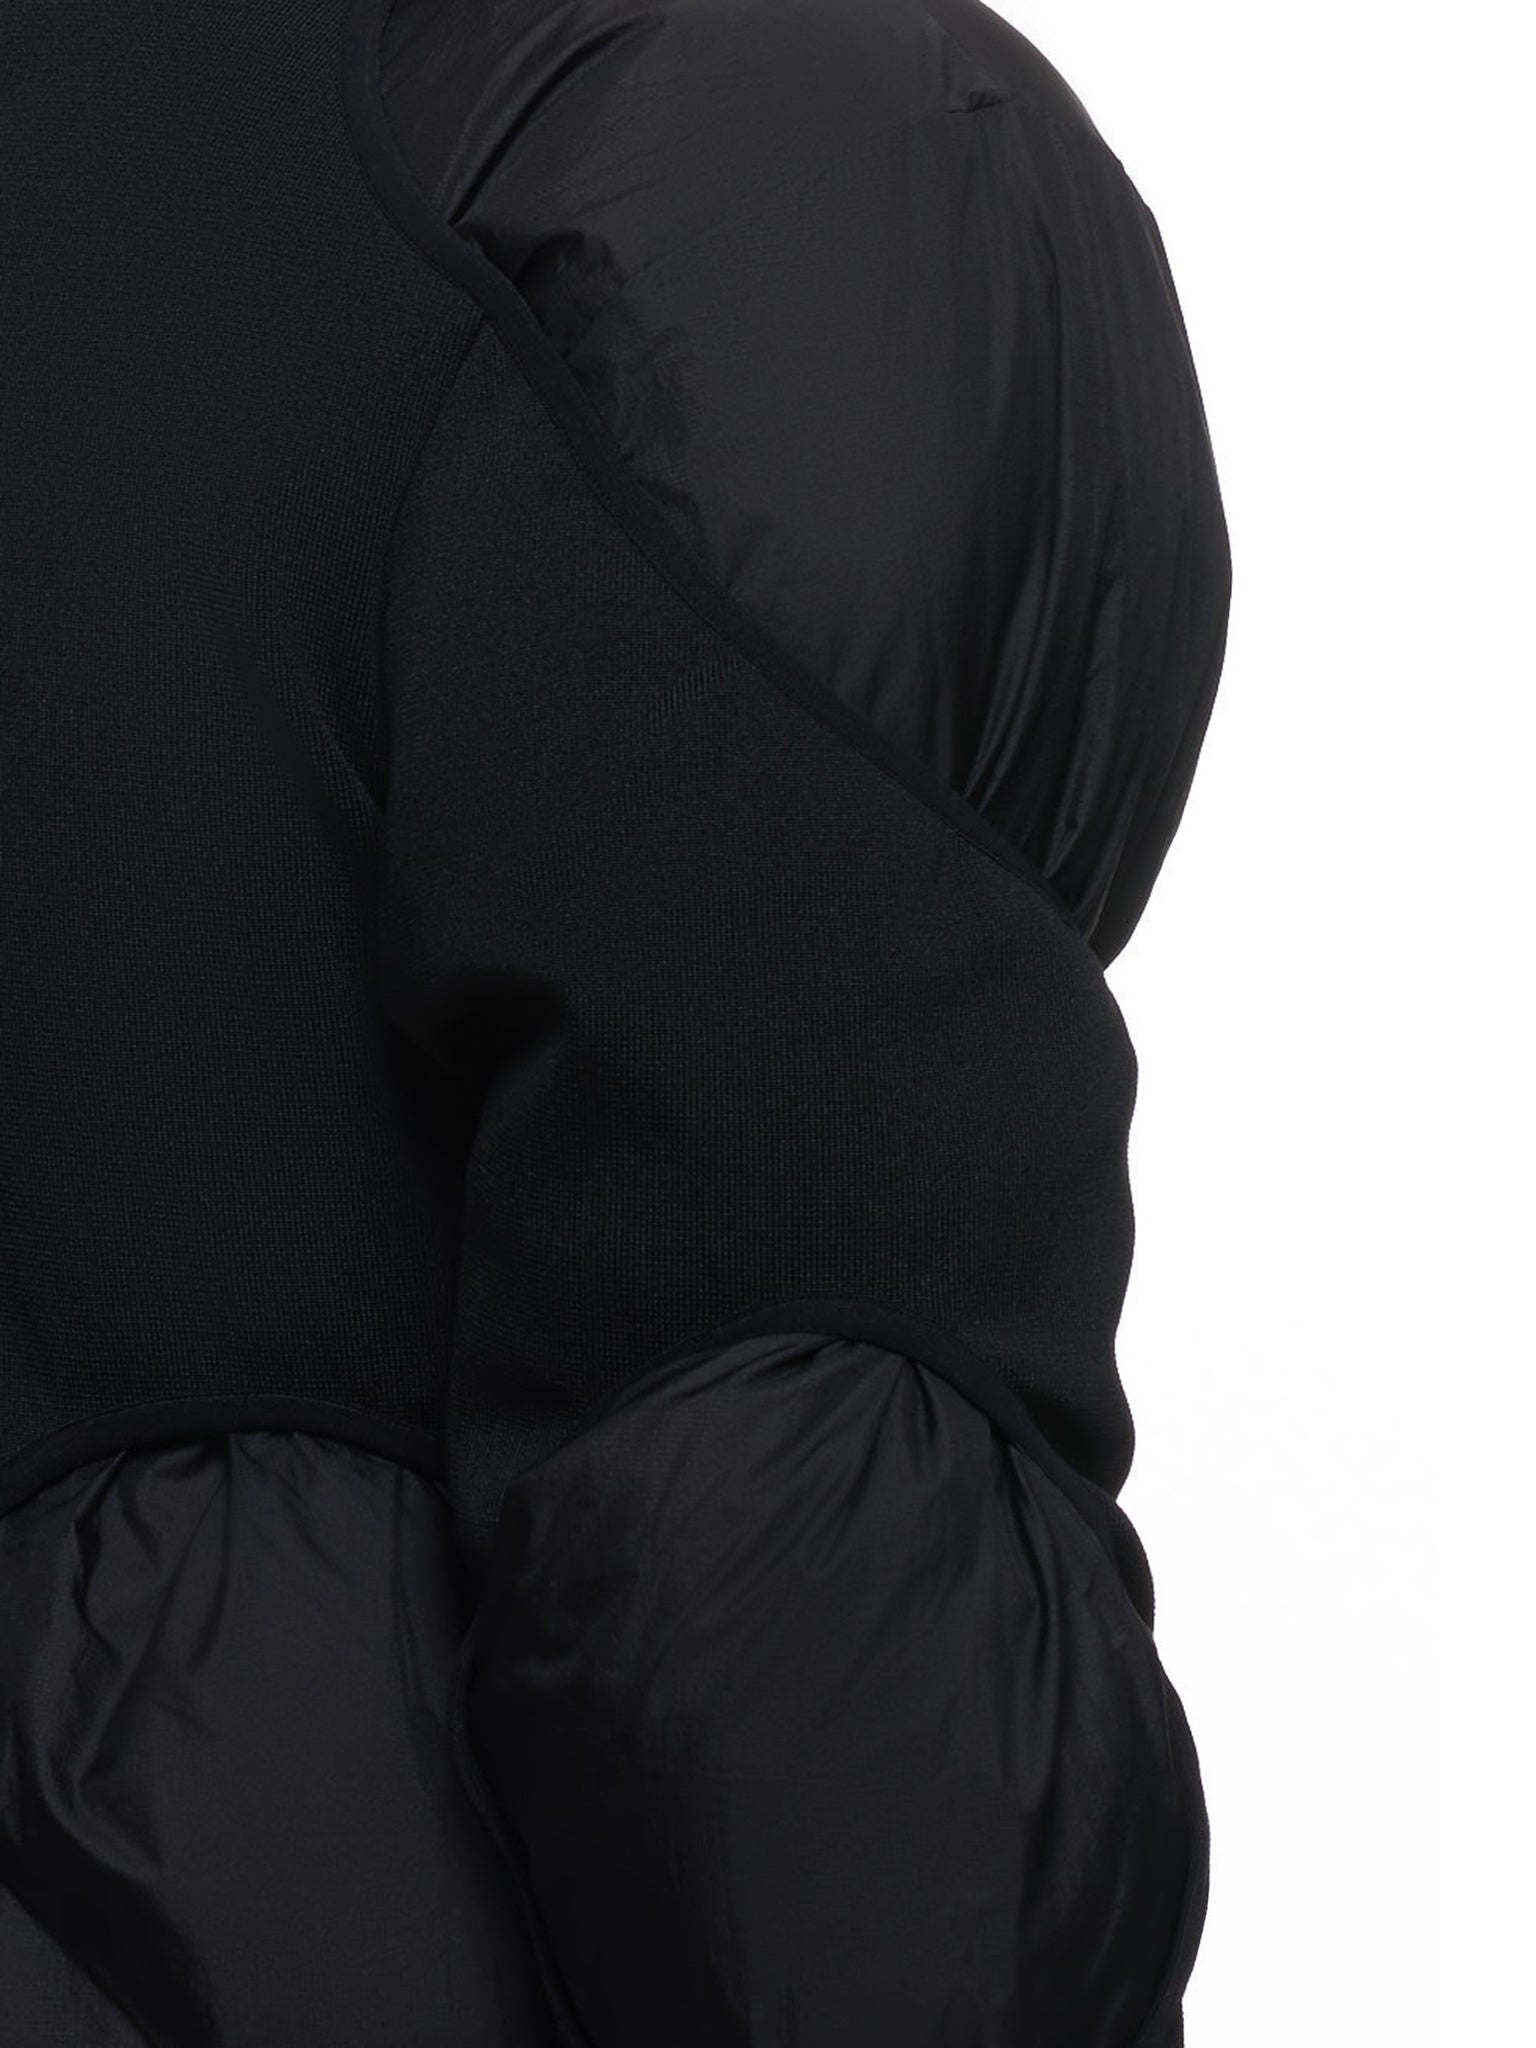 Post Archive Faction (PAF) Jacket | H.Lorenzo Detail 1